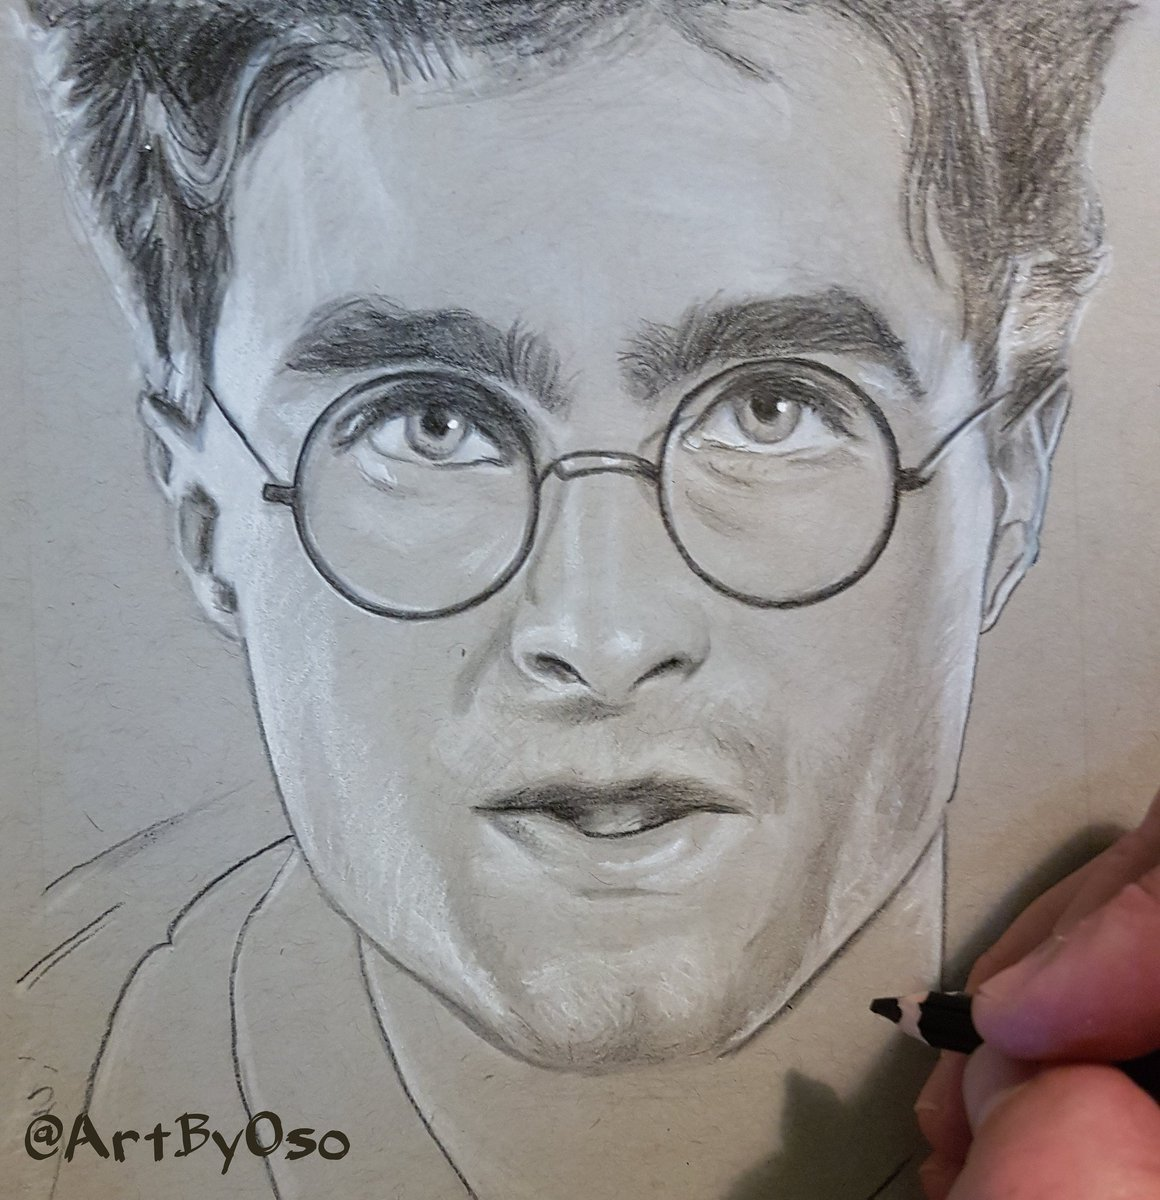 #HappyBirthday #DanielRadcliffe, 28!   #HarryPotter #fanart #prismacolor #pencil #drawing on toned #strathmore paper by @ArtByOso<br>http://pic.twitter.com/lnQNSHuhBH